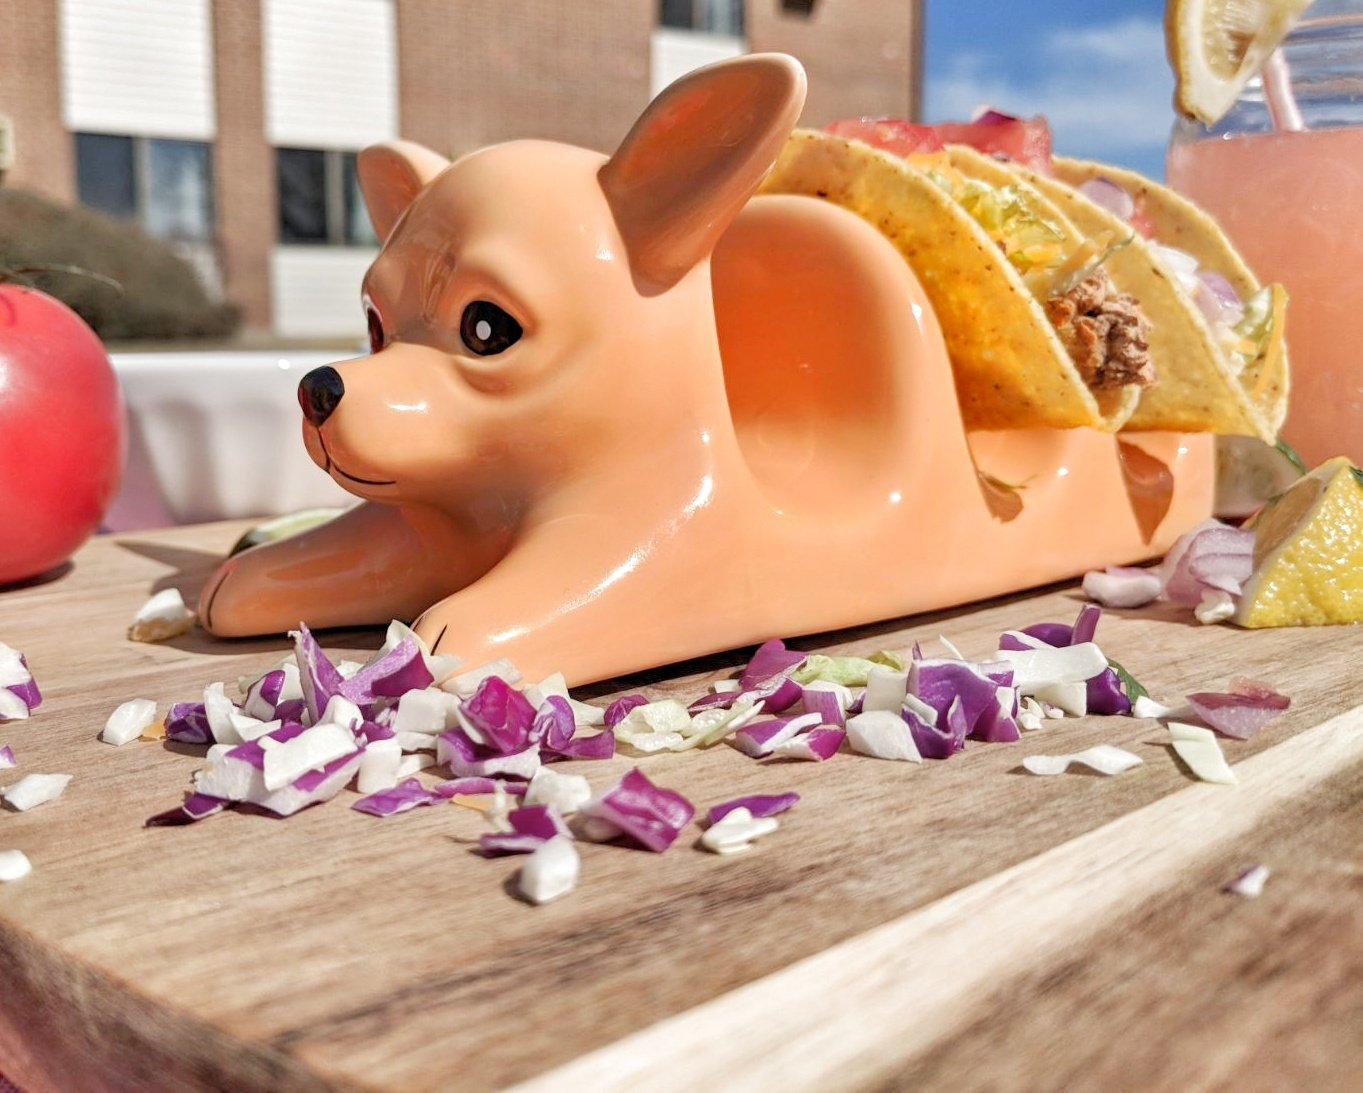 Chihuahua Taco Holder Funny, Novelty Ceramic Taco Tuesday Food Tray   Holds 3 Tacos   Soft & Hard Flour Corn Tortillas   Dishwasher Safe   Excellent Gift for Kids and Adults   HMH Elite by HMH Elite (Image #3)